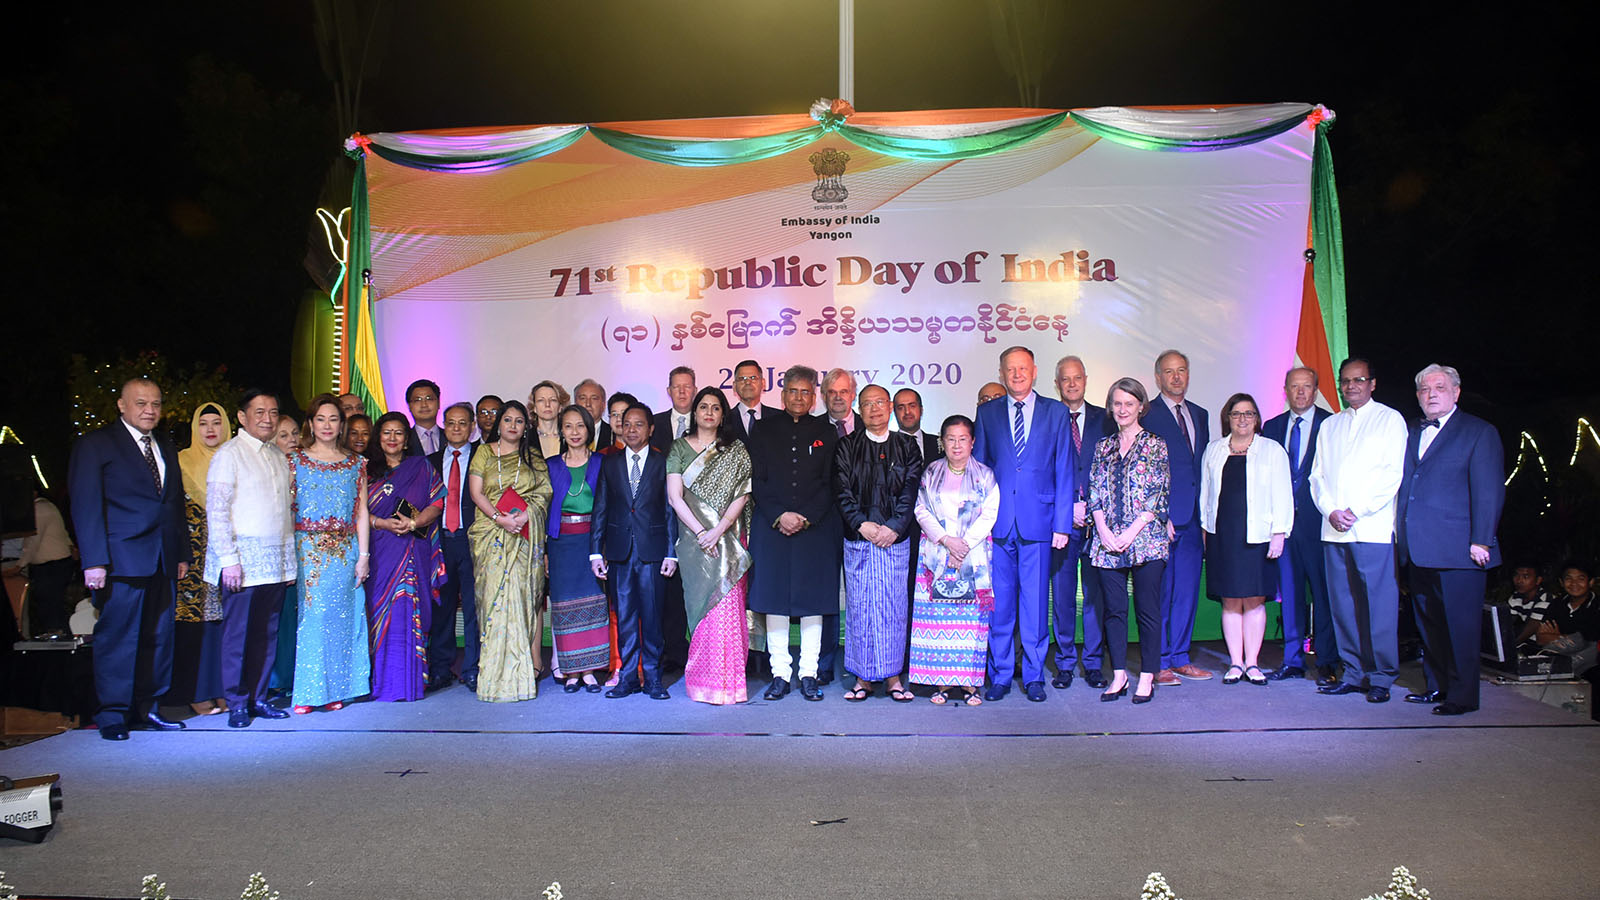 Indian Ambassador Mr Saurabh Kumar and wife pose for a group photo together with Union Minister U Thant Sin Maung and wife and dignitaries at the ceremony to mark the 71st Republic Day of India in Yangon yesterday. Photo: MNA